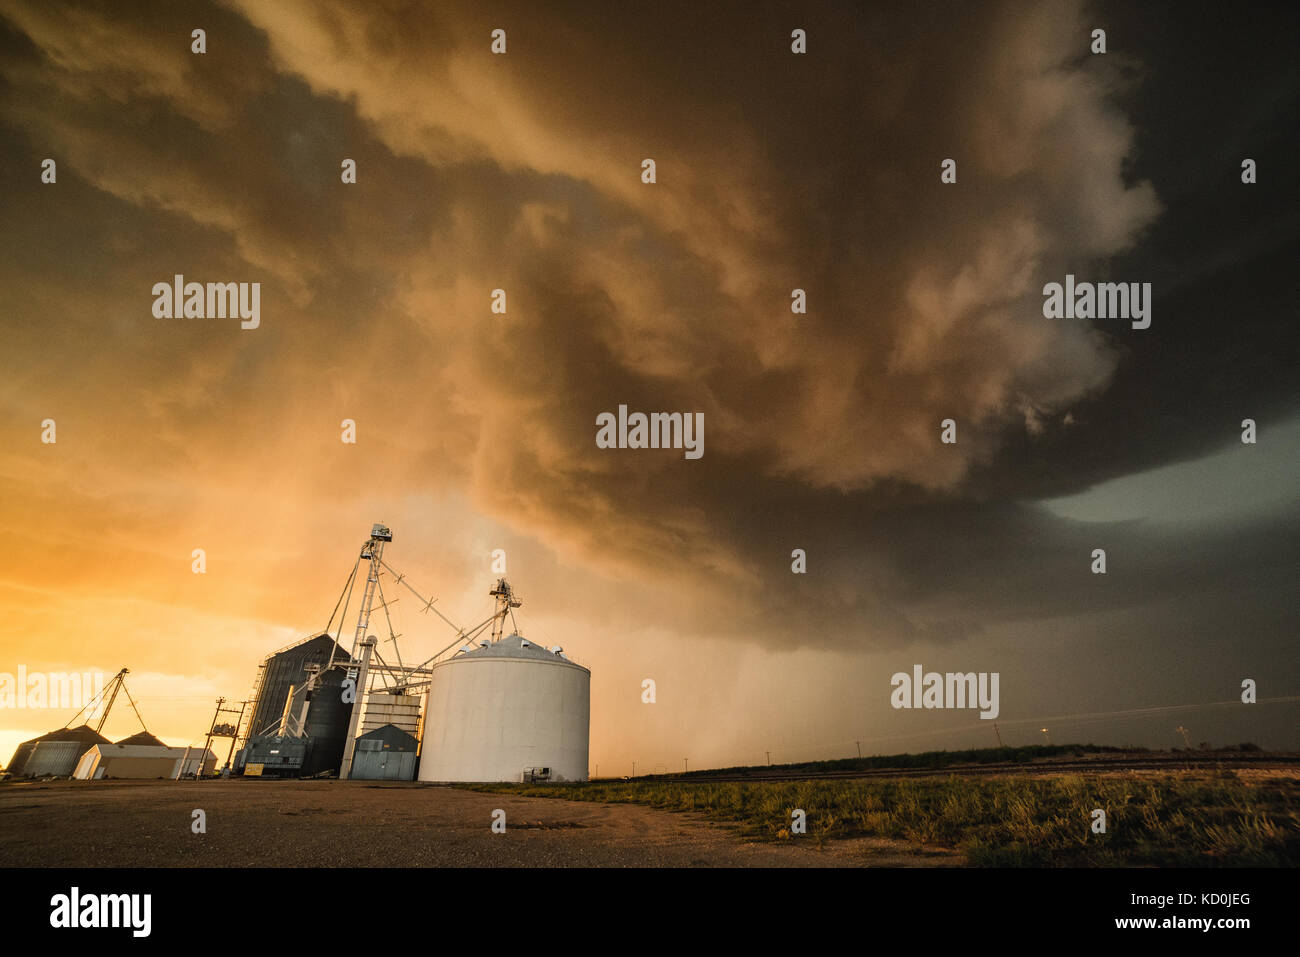 Strong storm above the town of Dalhart with strong winds, heavy rain and hail, grain silo in the foreground, Dalhart, Stock Photo